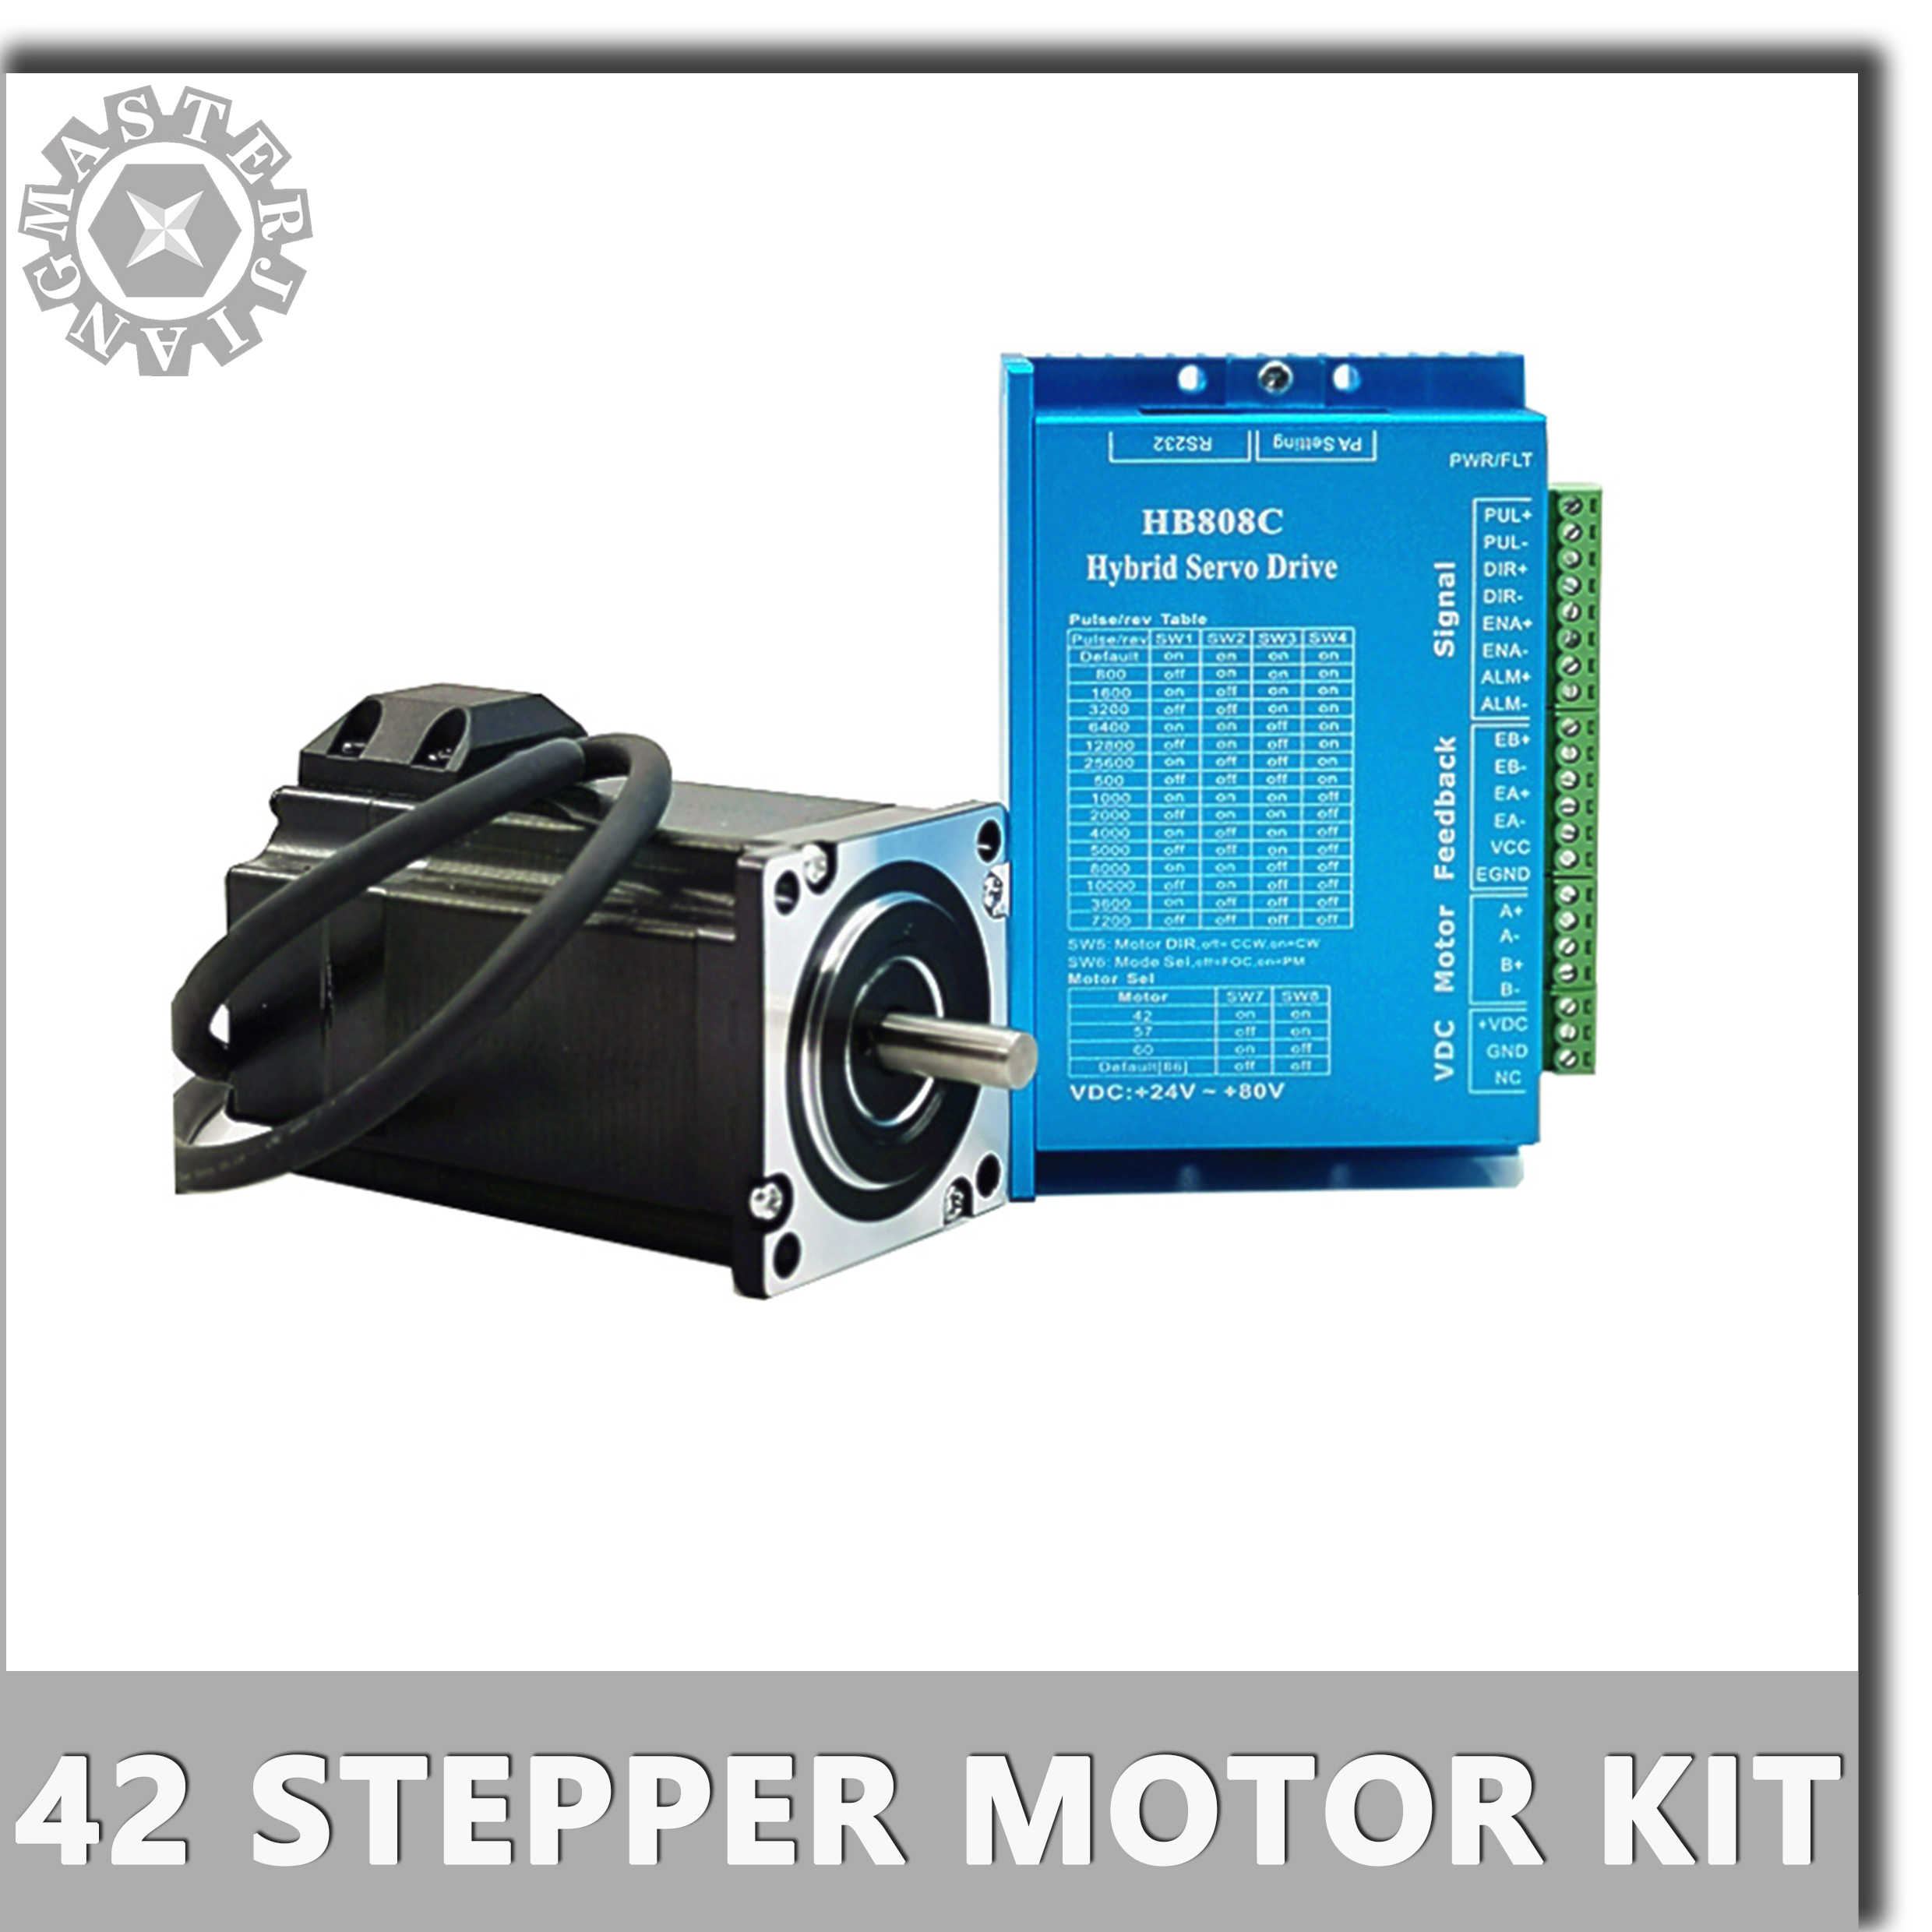 42 Hybrid Closed-loop Stepper Motor Driver 0.55nm 0.7nm Servo Motor HB808C step motor driver closed loop motor 2-phase Nema 17.